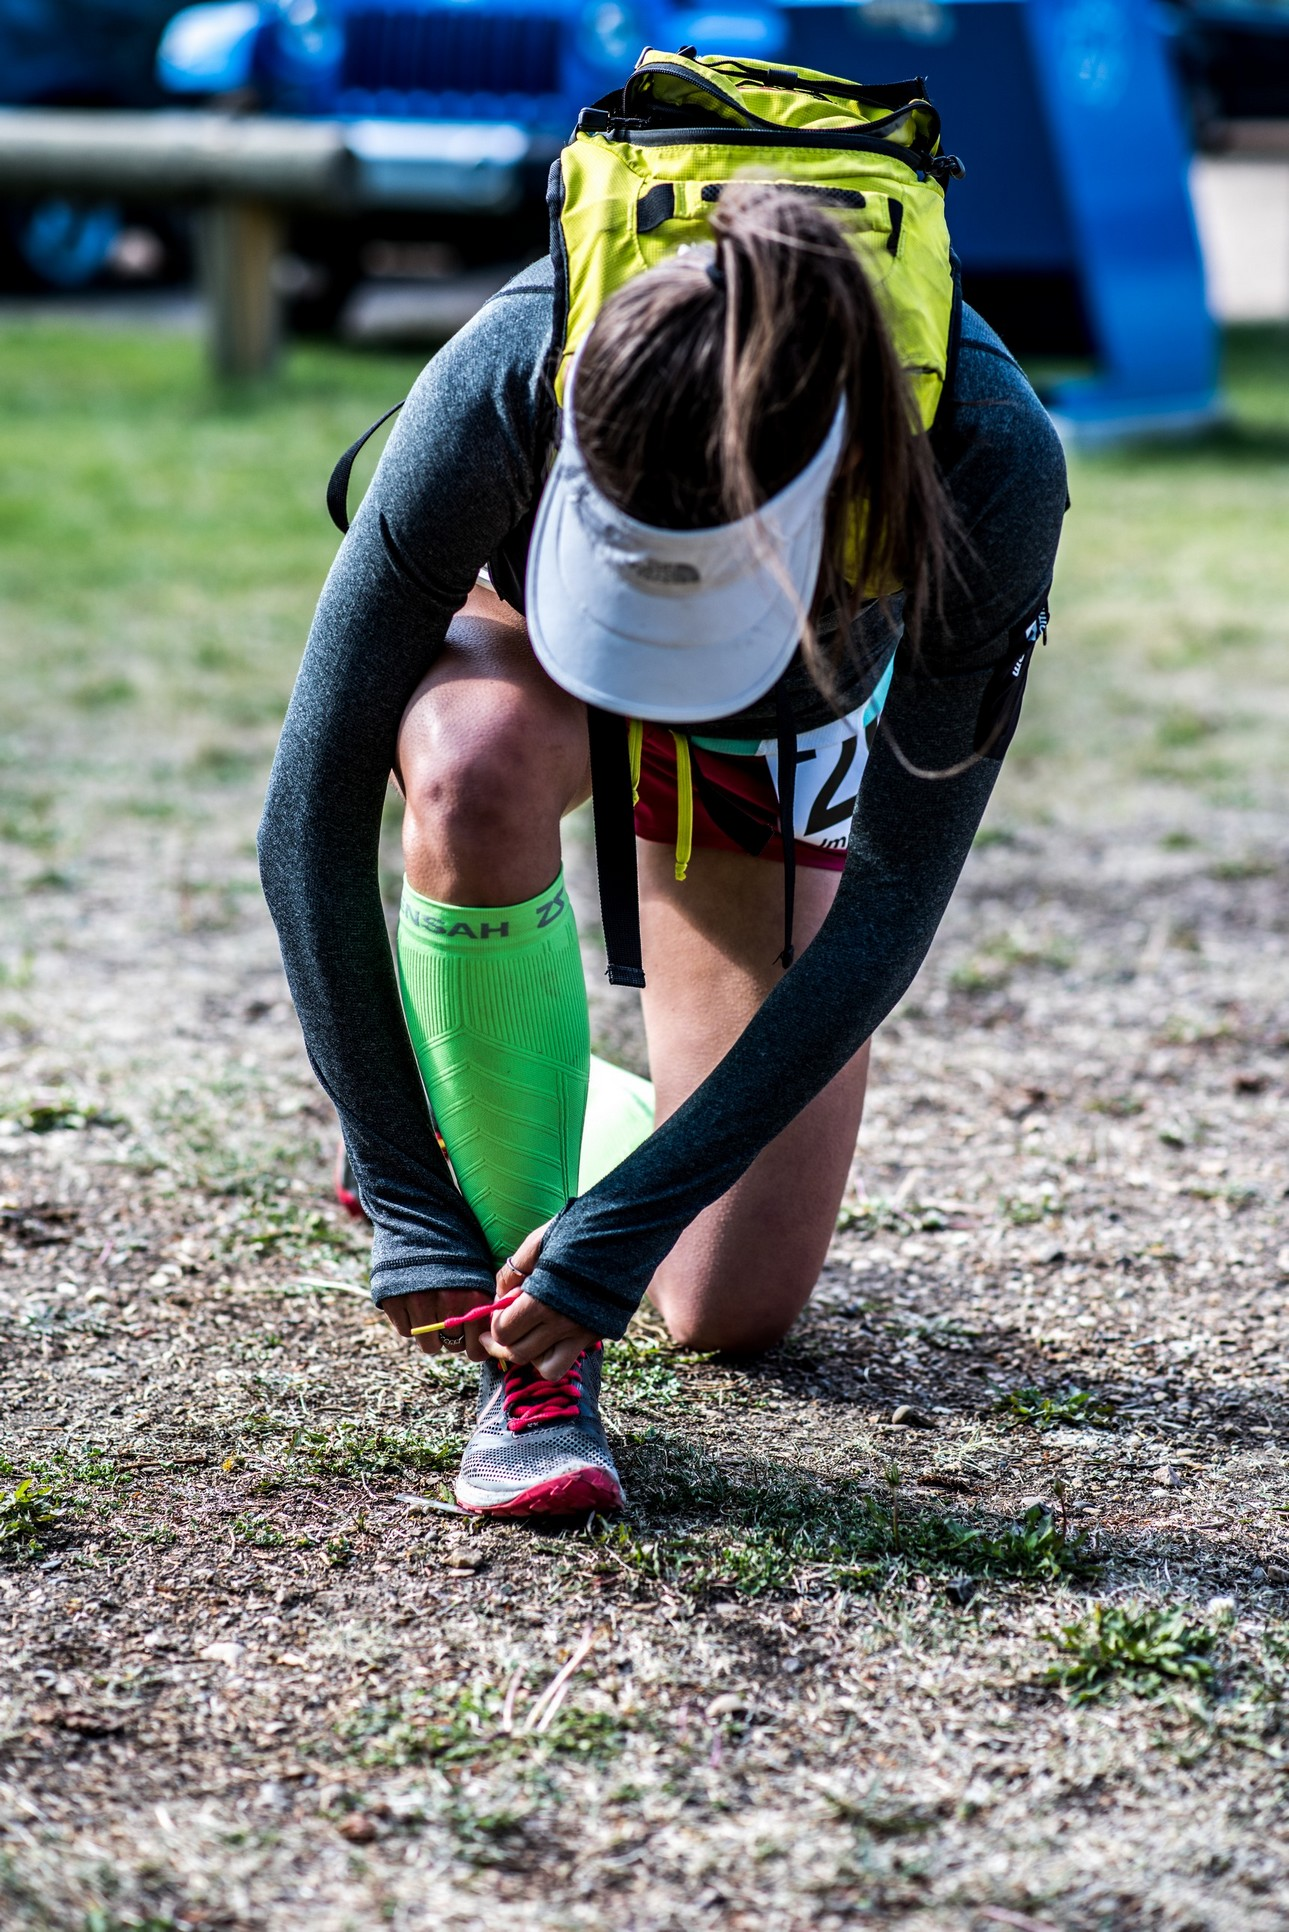 Tying the timing strips to my shoes pre-race. Image by IG: @irrationalcarny